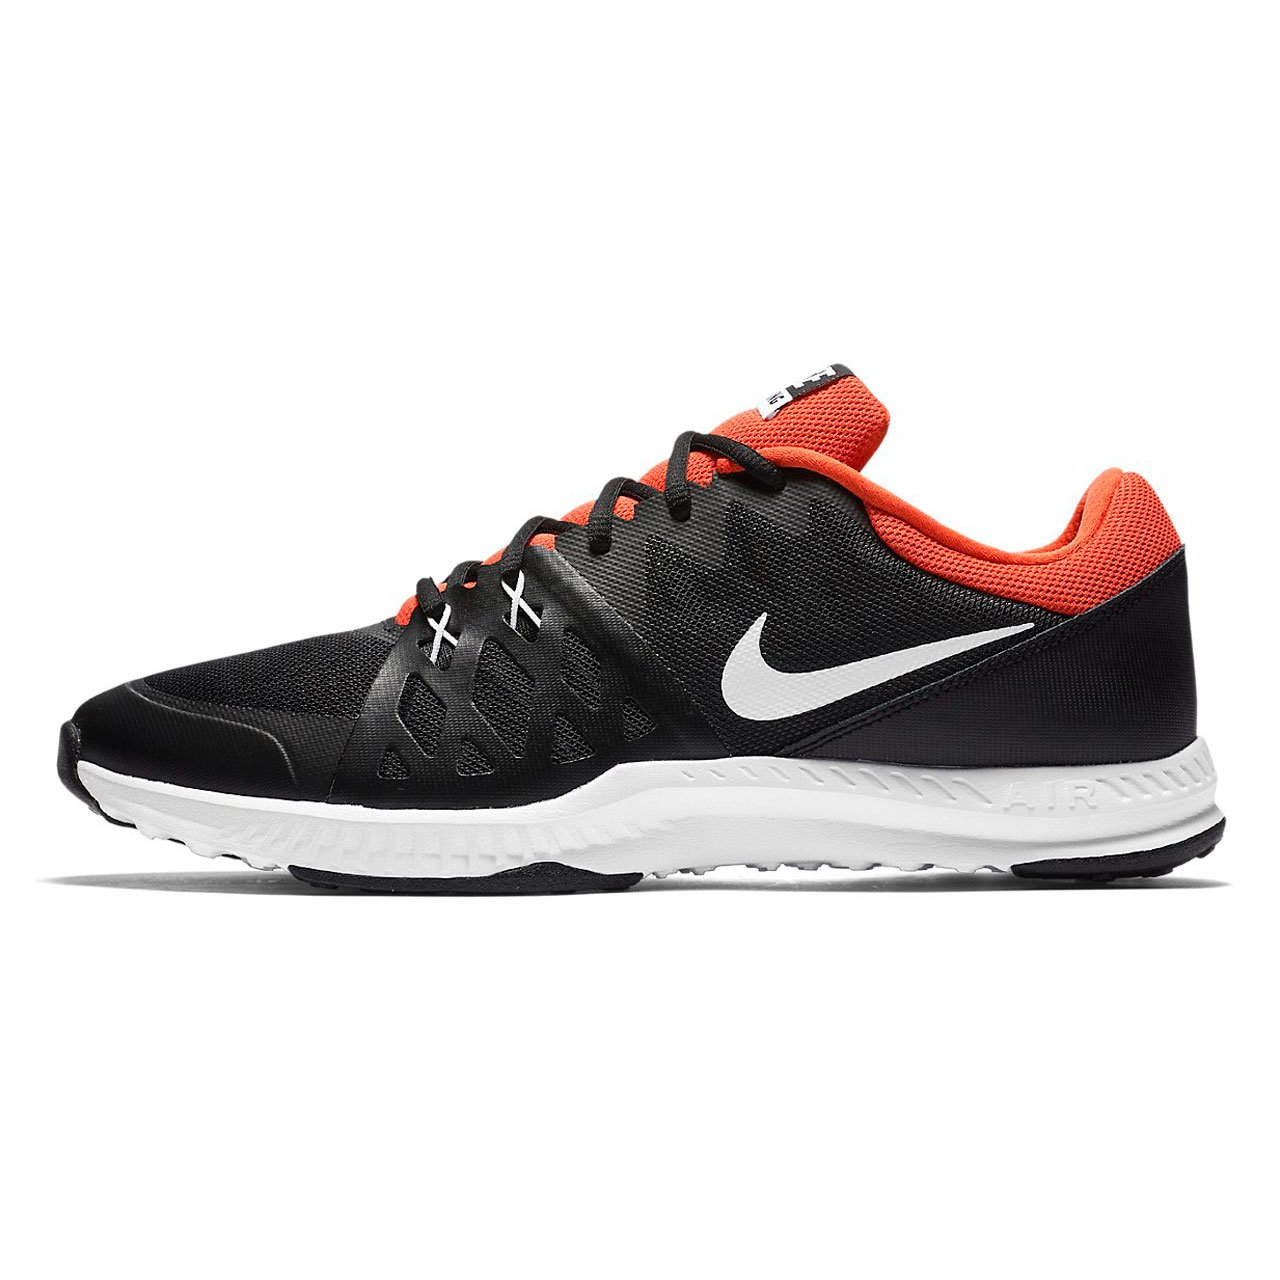 2b1f243e6a7216 Galleon - Nike Men s Air Epic Speed TR II Cross Trainer